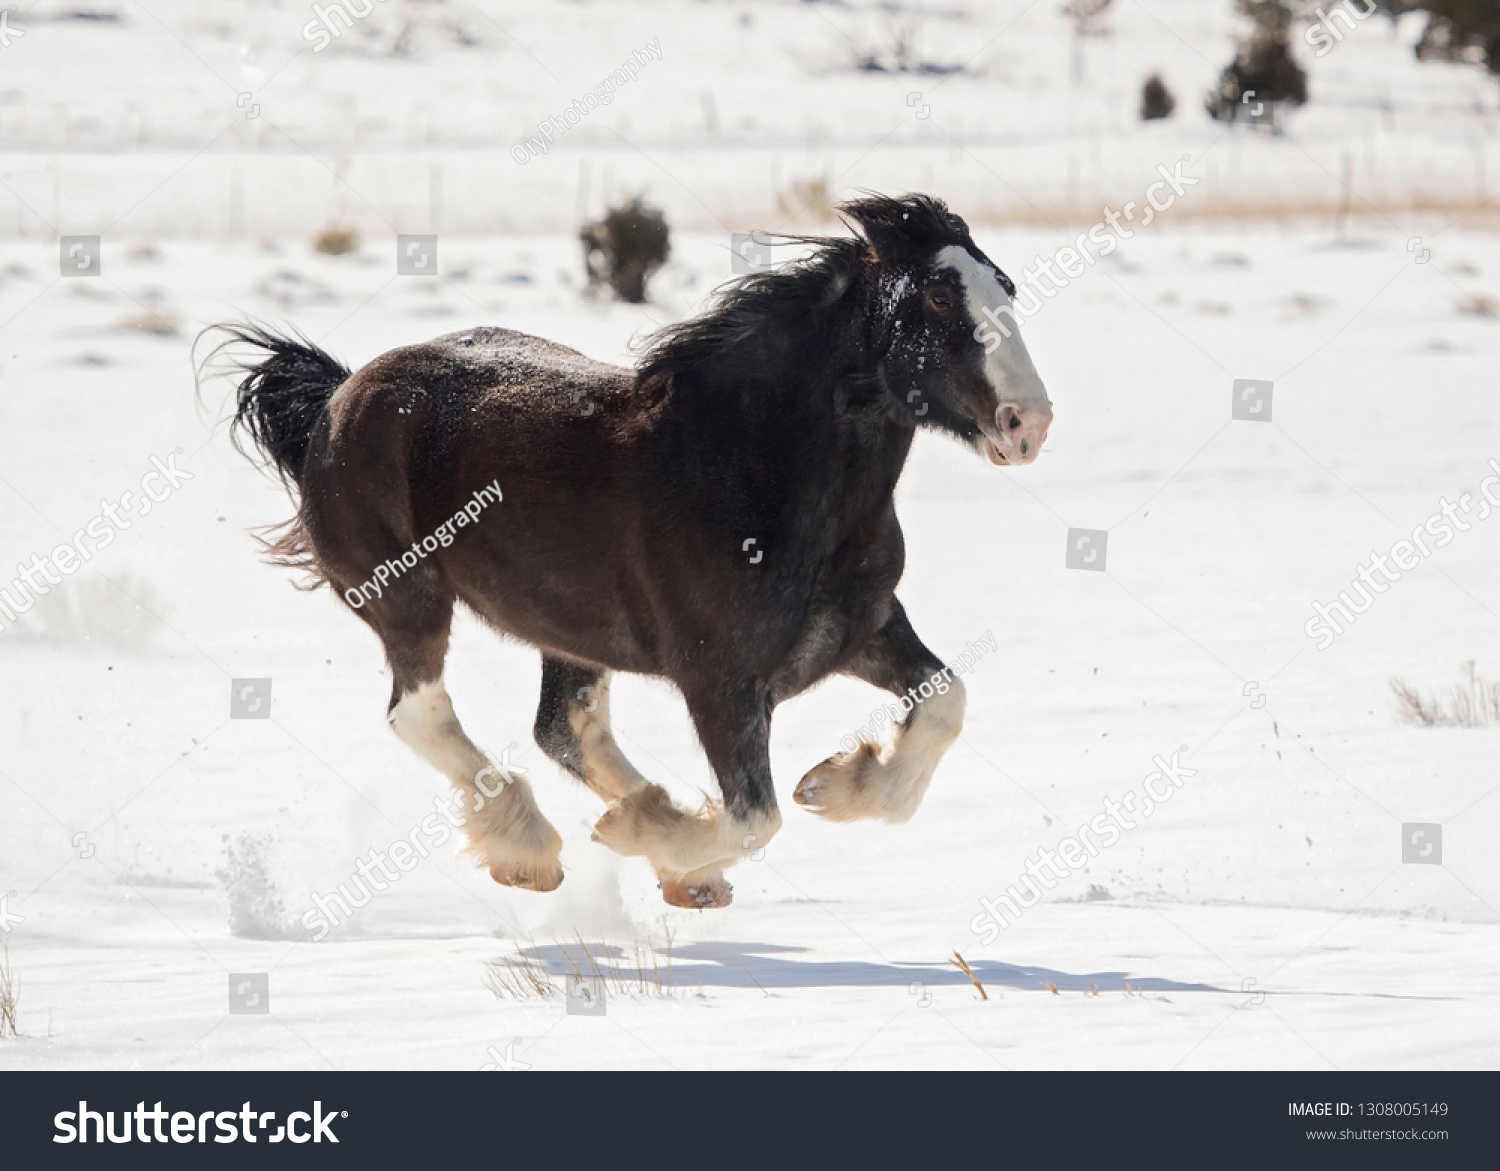 Black Clydesdale Running Snow Stock Photo Edit Now 1308005149